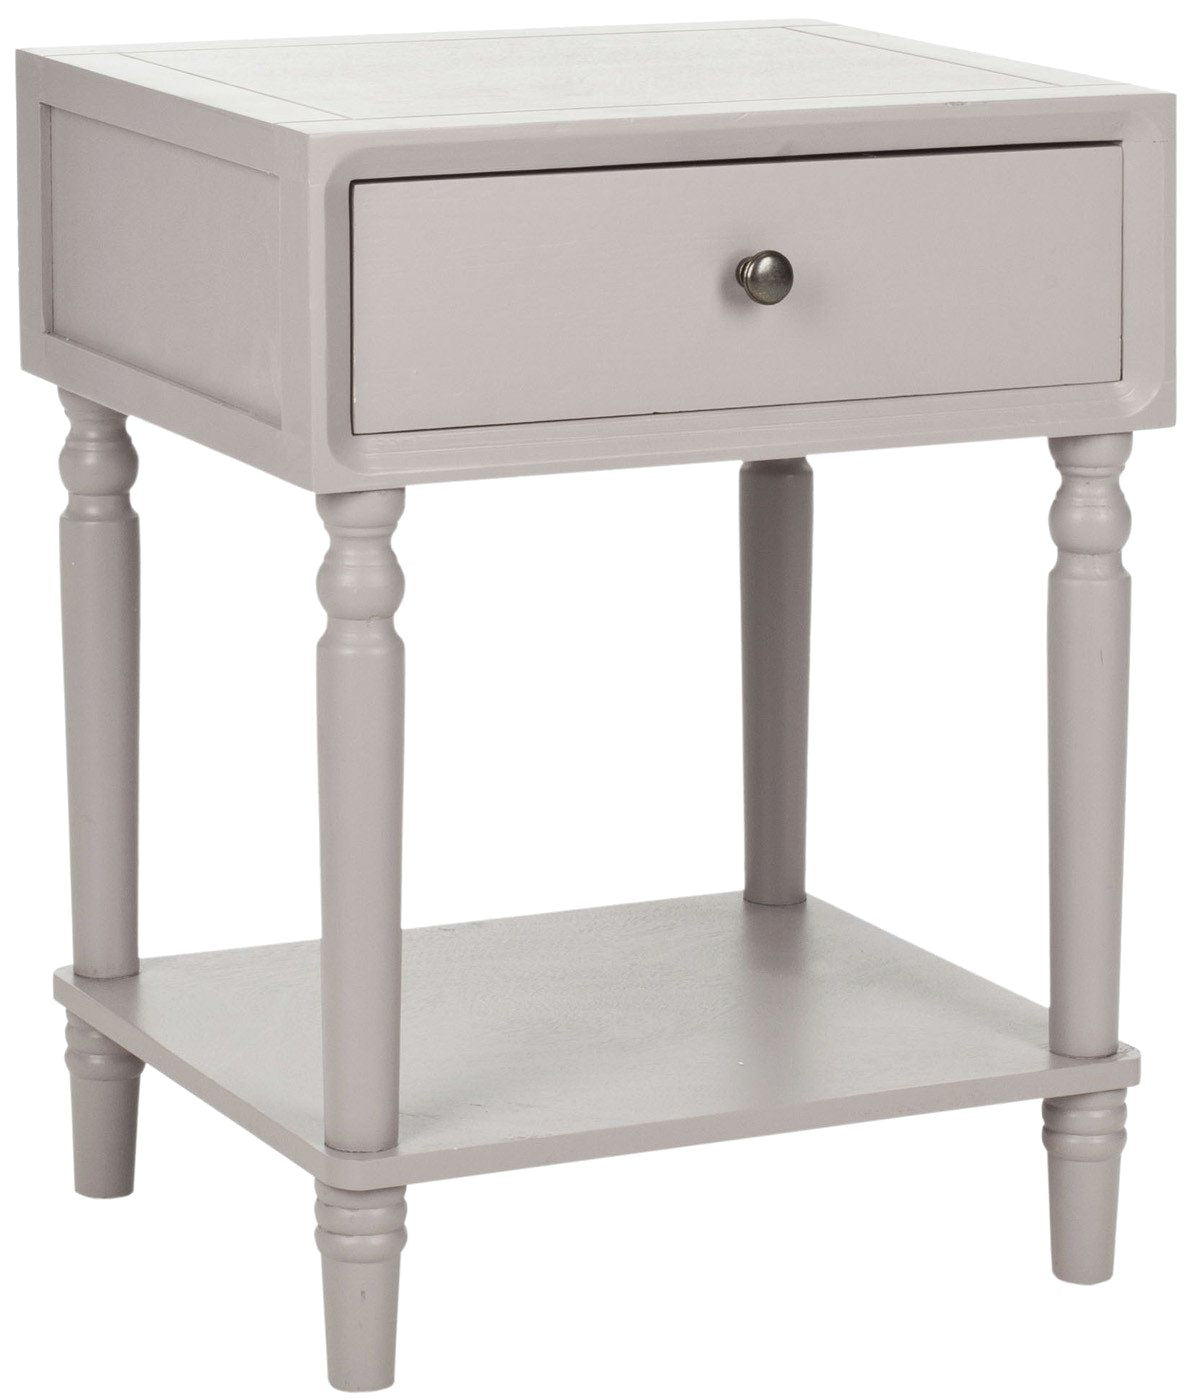 - Buy Safavieh AMH6611C Siobhan Accent Table With Storage Drawer Quartz Grey  At Contemporary Furniture Warehouse